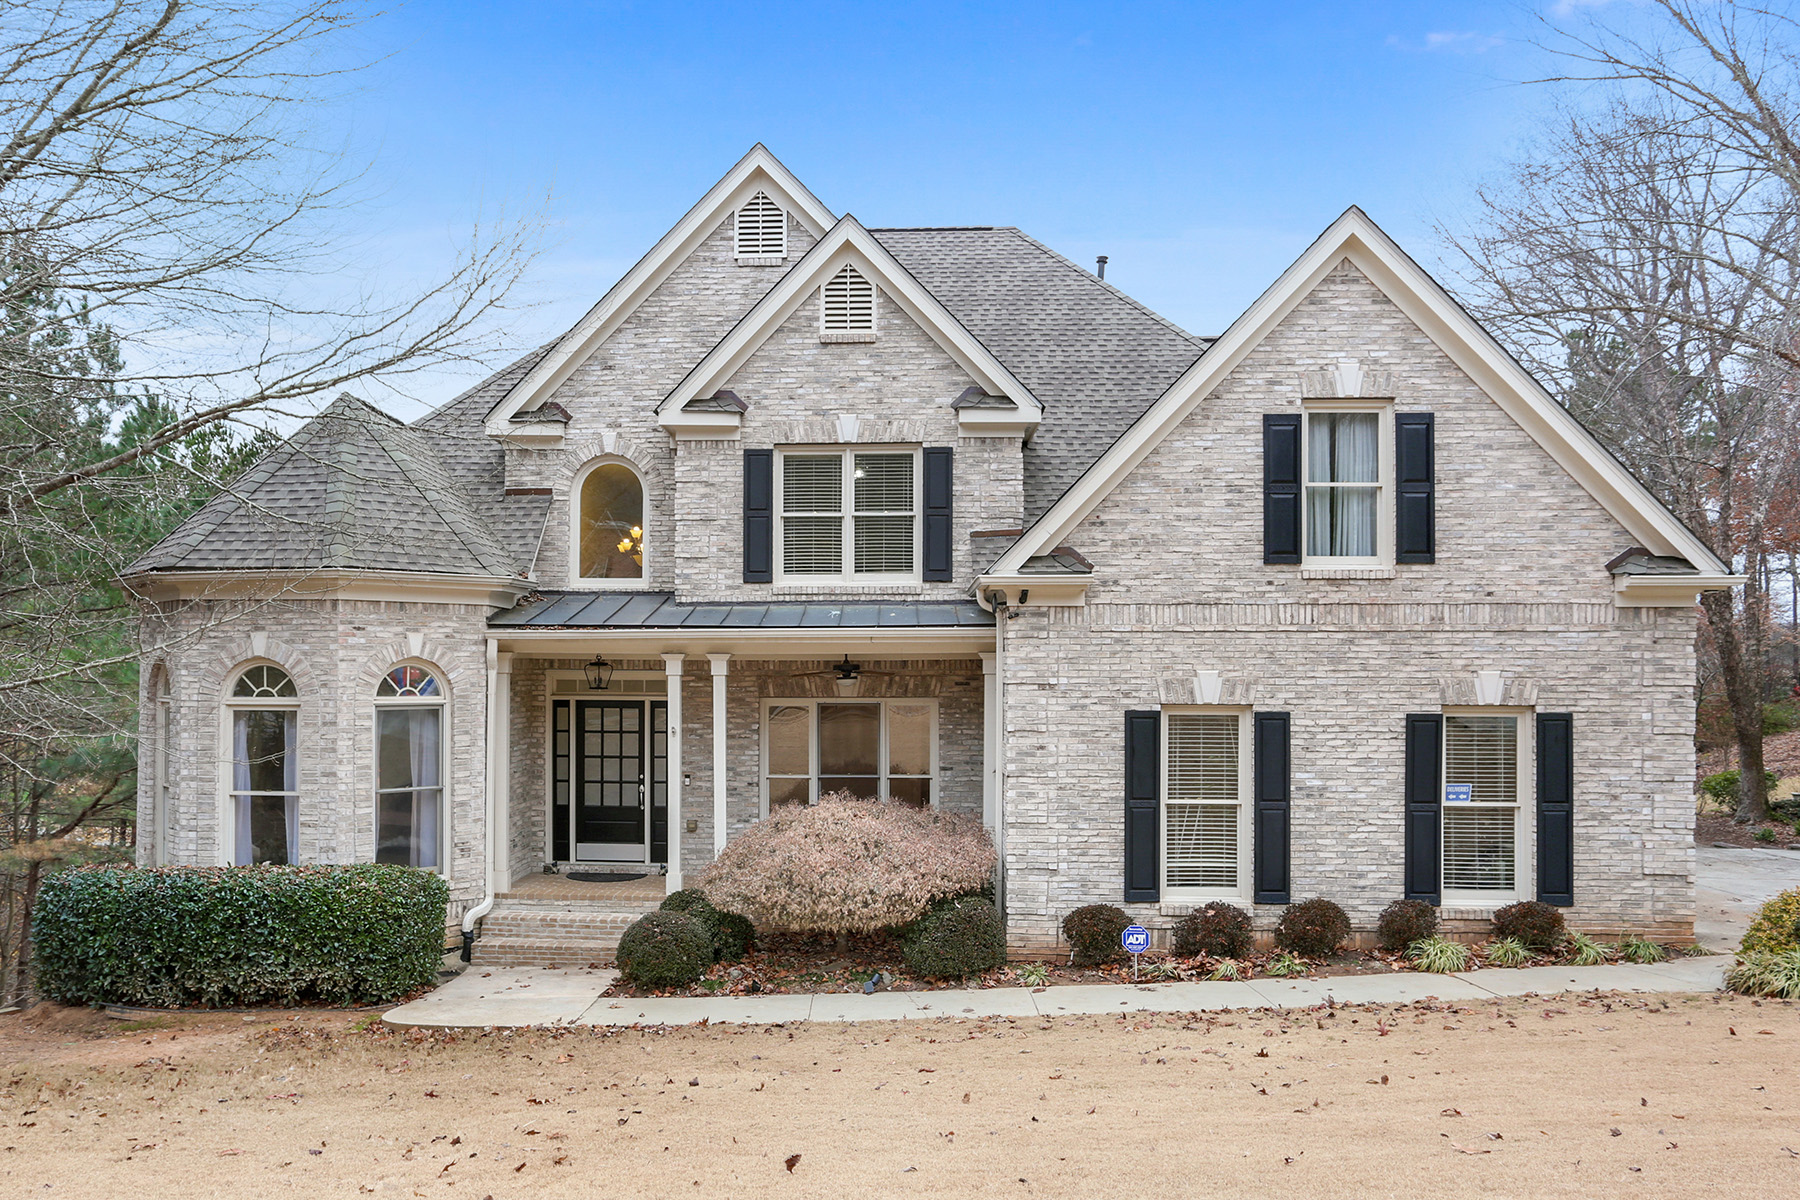 Single Family Homes pour l Vente à Gorgeous Home Located in Sought-After Foxhall Neighborhood 1640 Settingdown Drive, Roswell, Georgia 30075 États-Unis